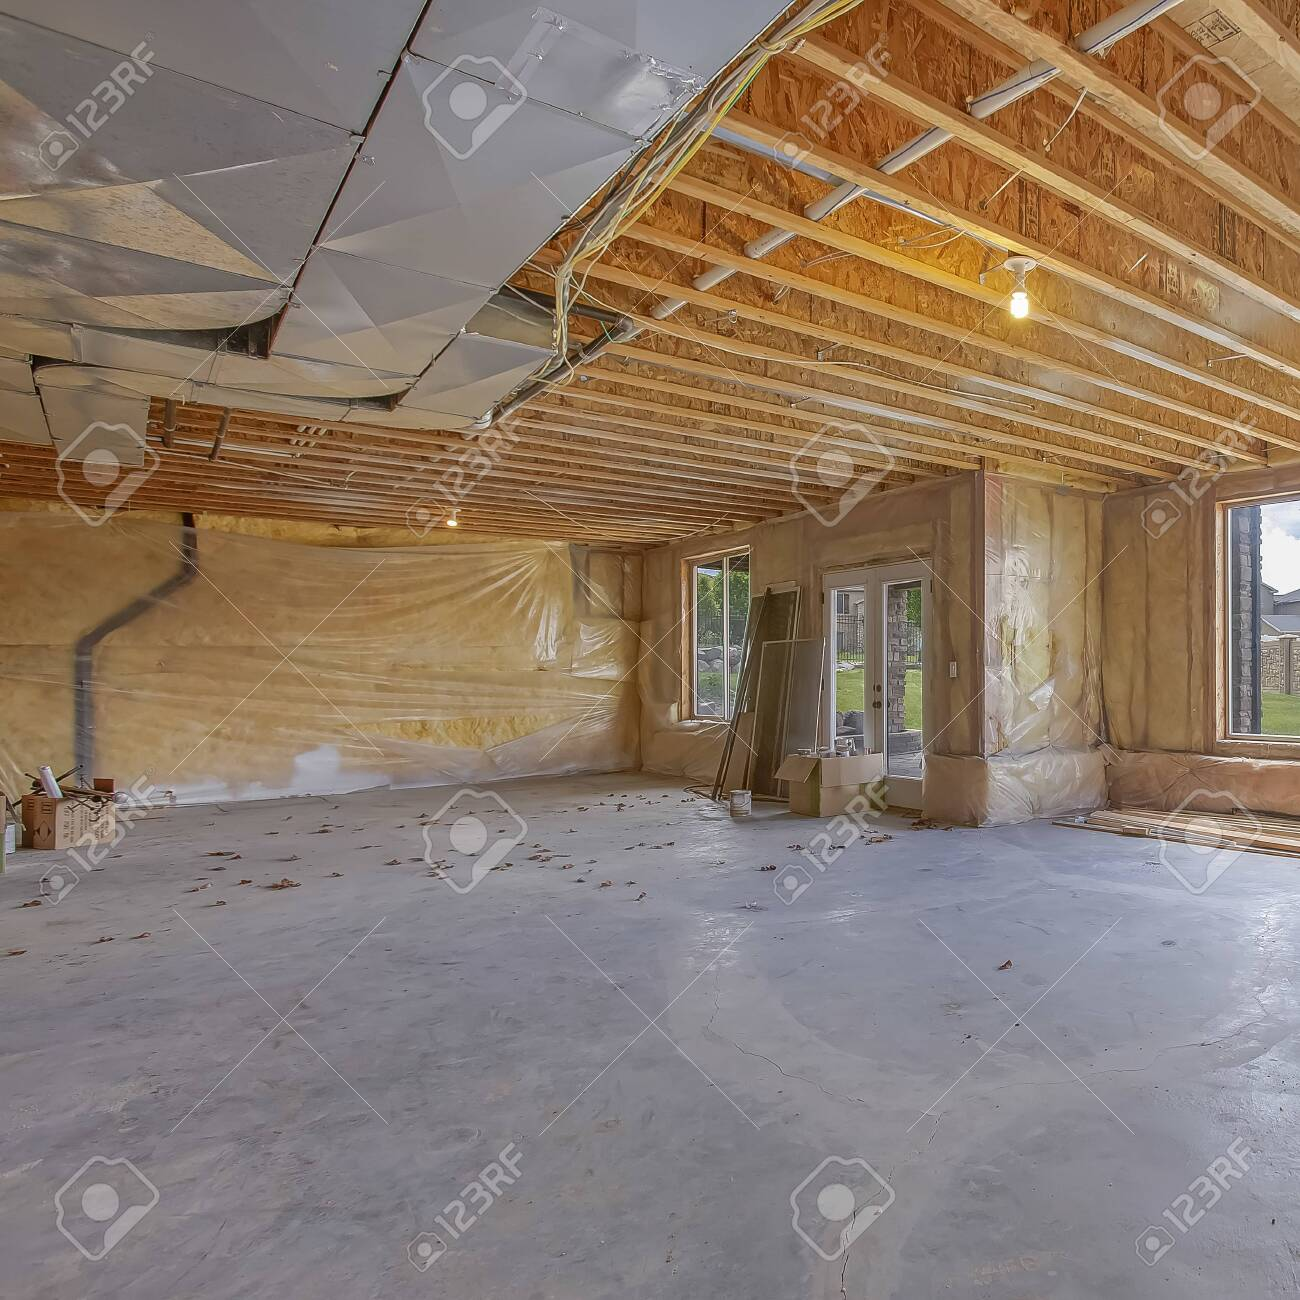 Square Unfinished house interior with air conditioning ducts..